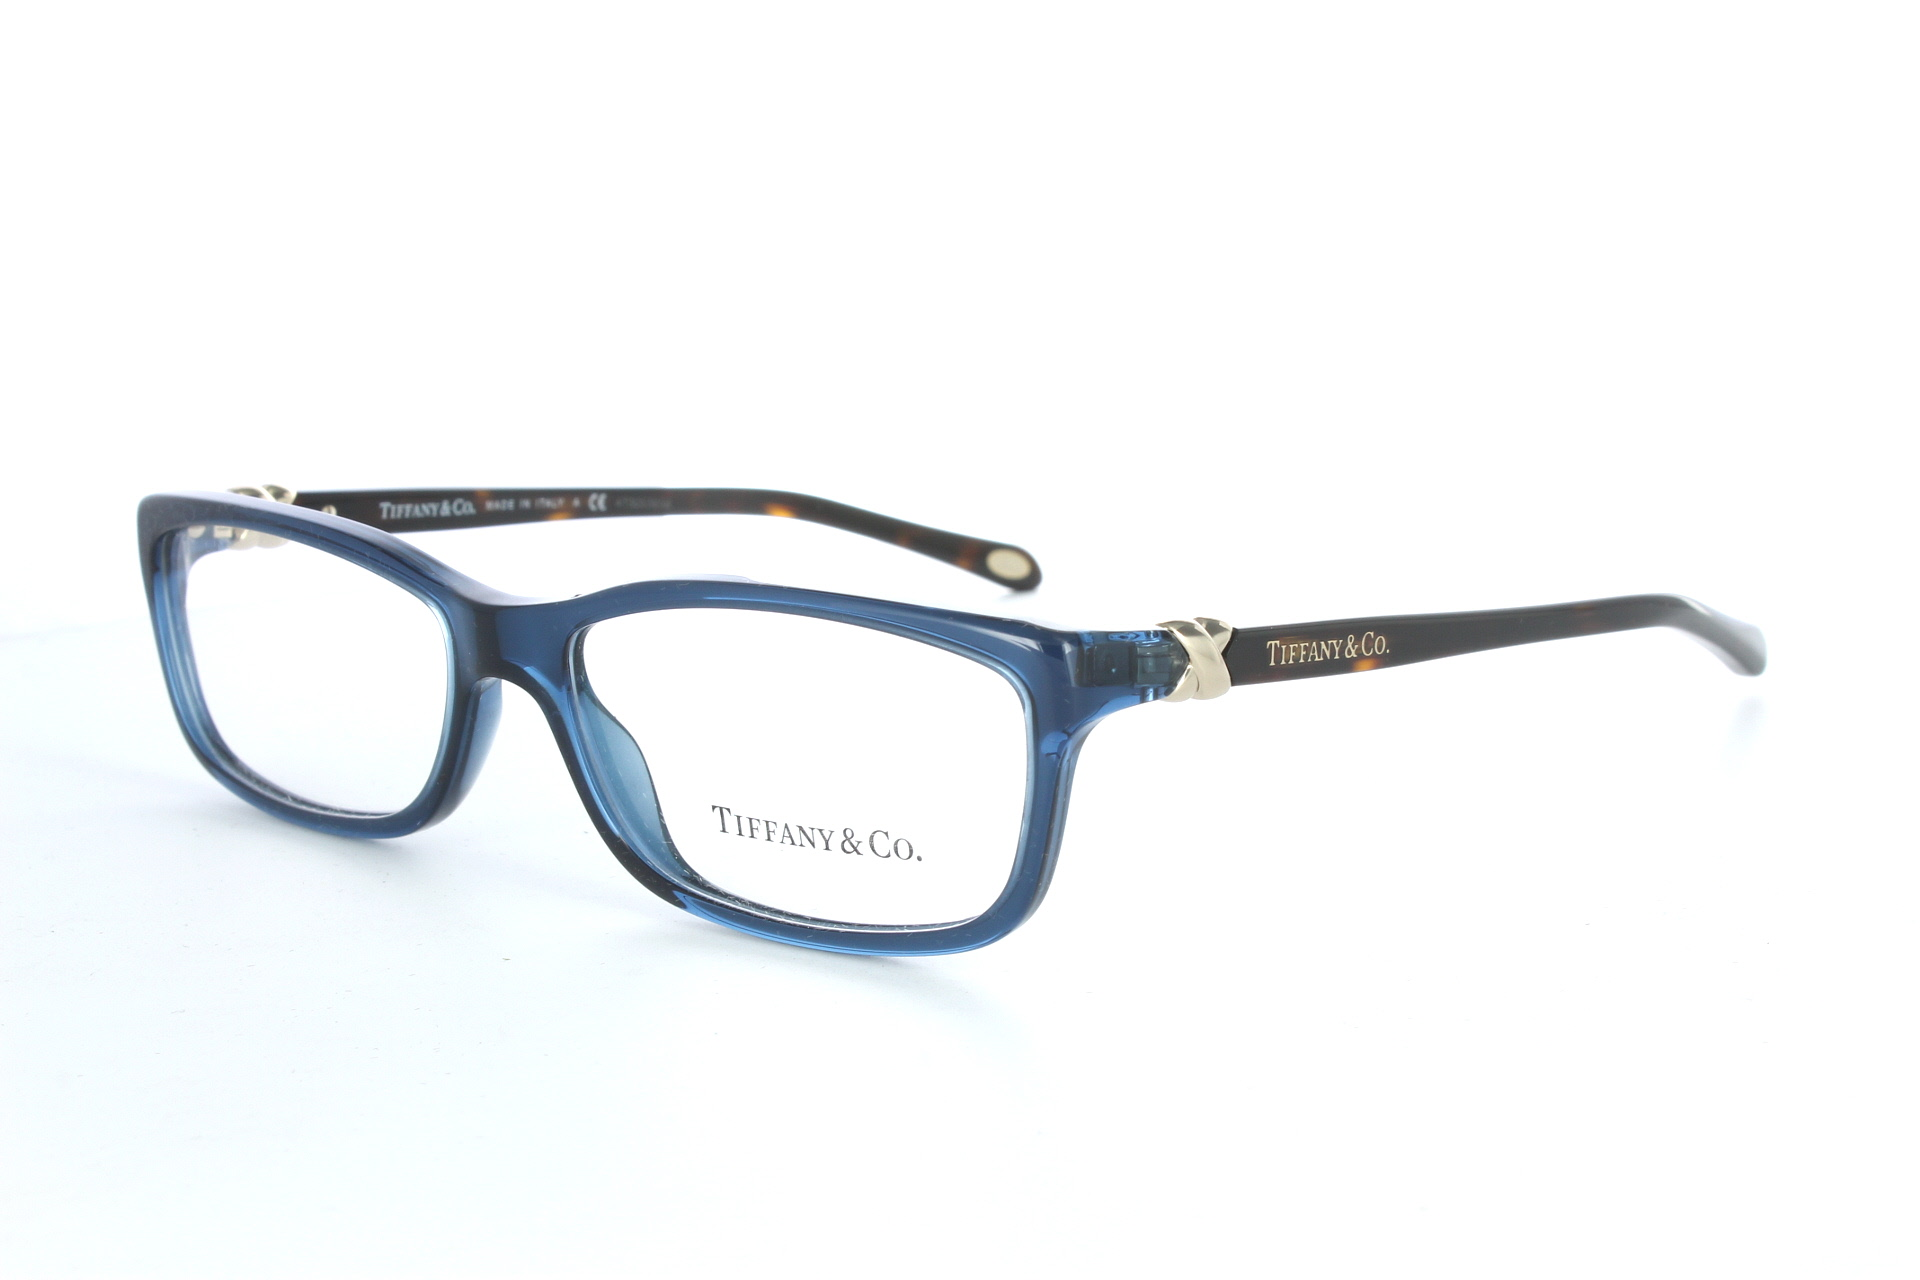 Tiffany Designer Eyeglass Frames : Tiffany & Co TF 2036 Tiffany & Co Designer Glasses